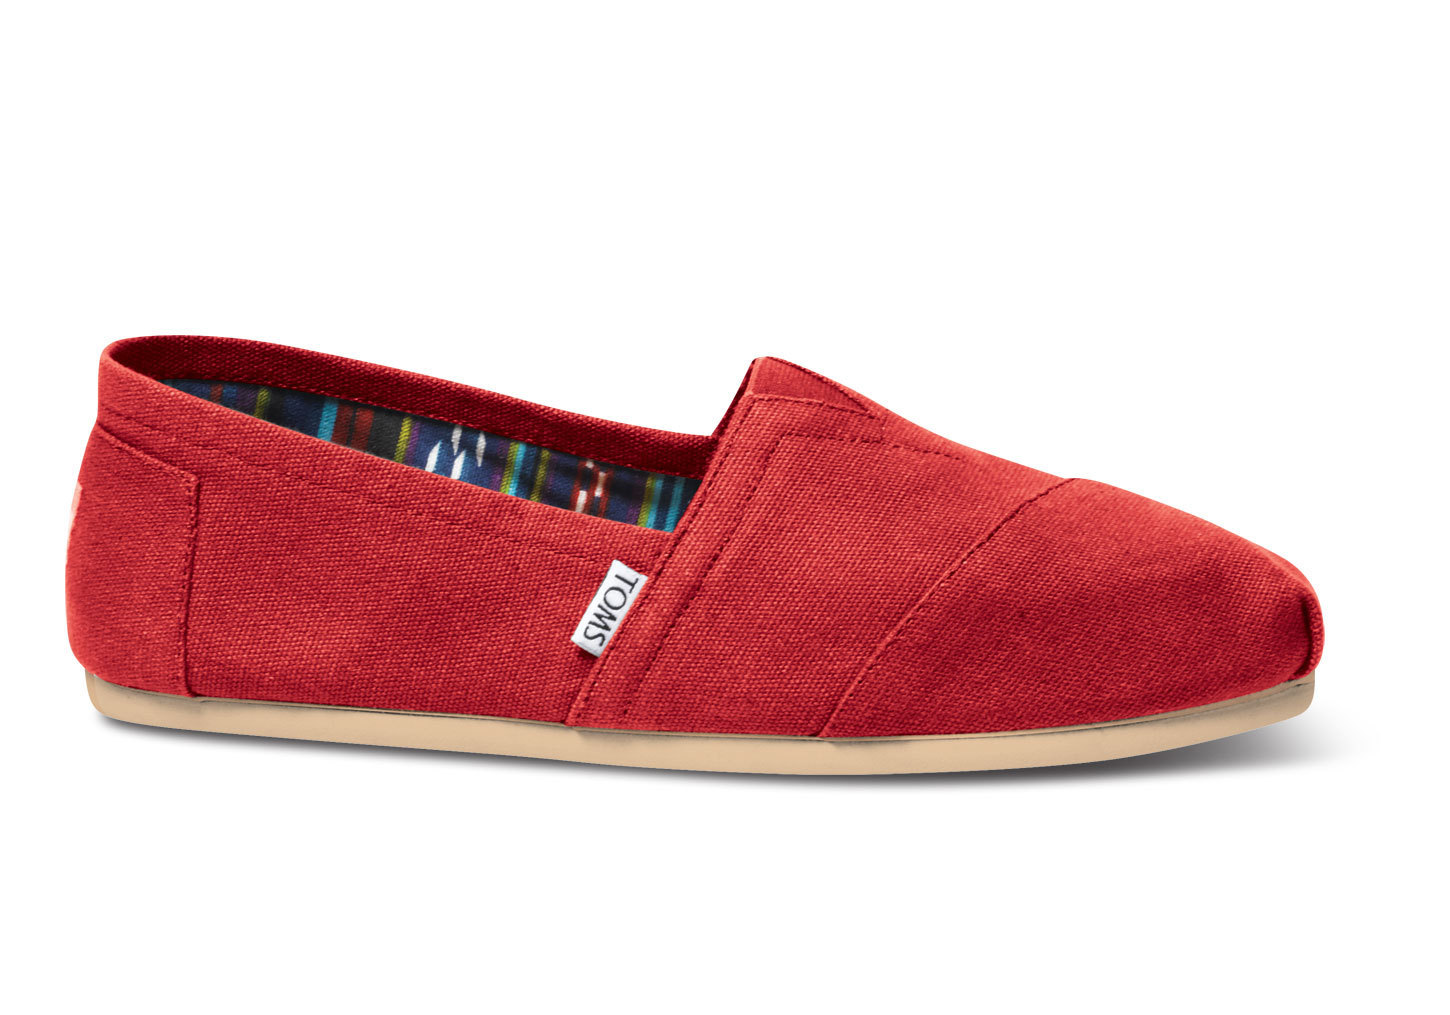 popular toms s slip on shoes canvas buyma